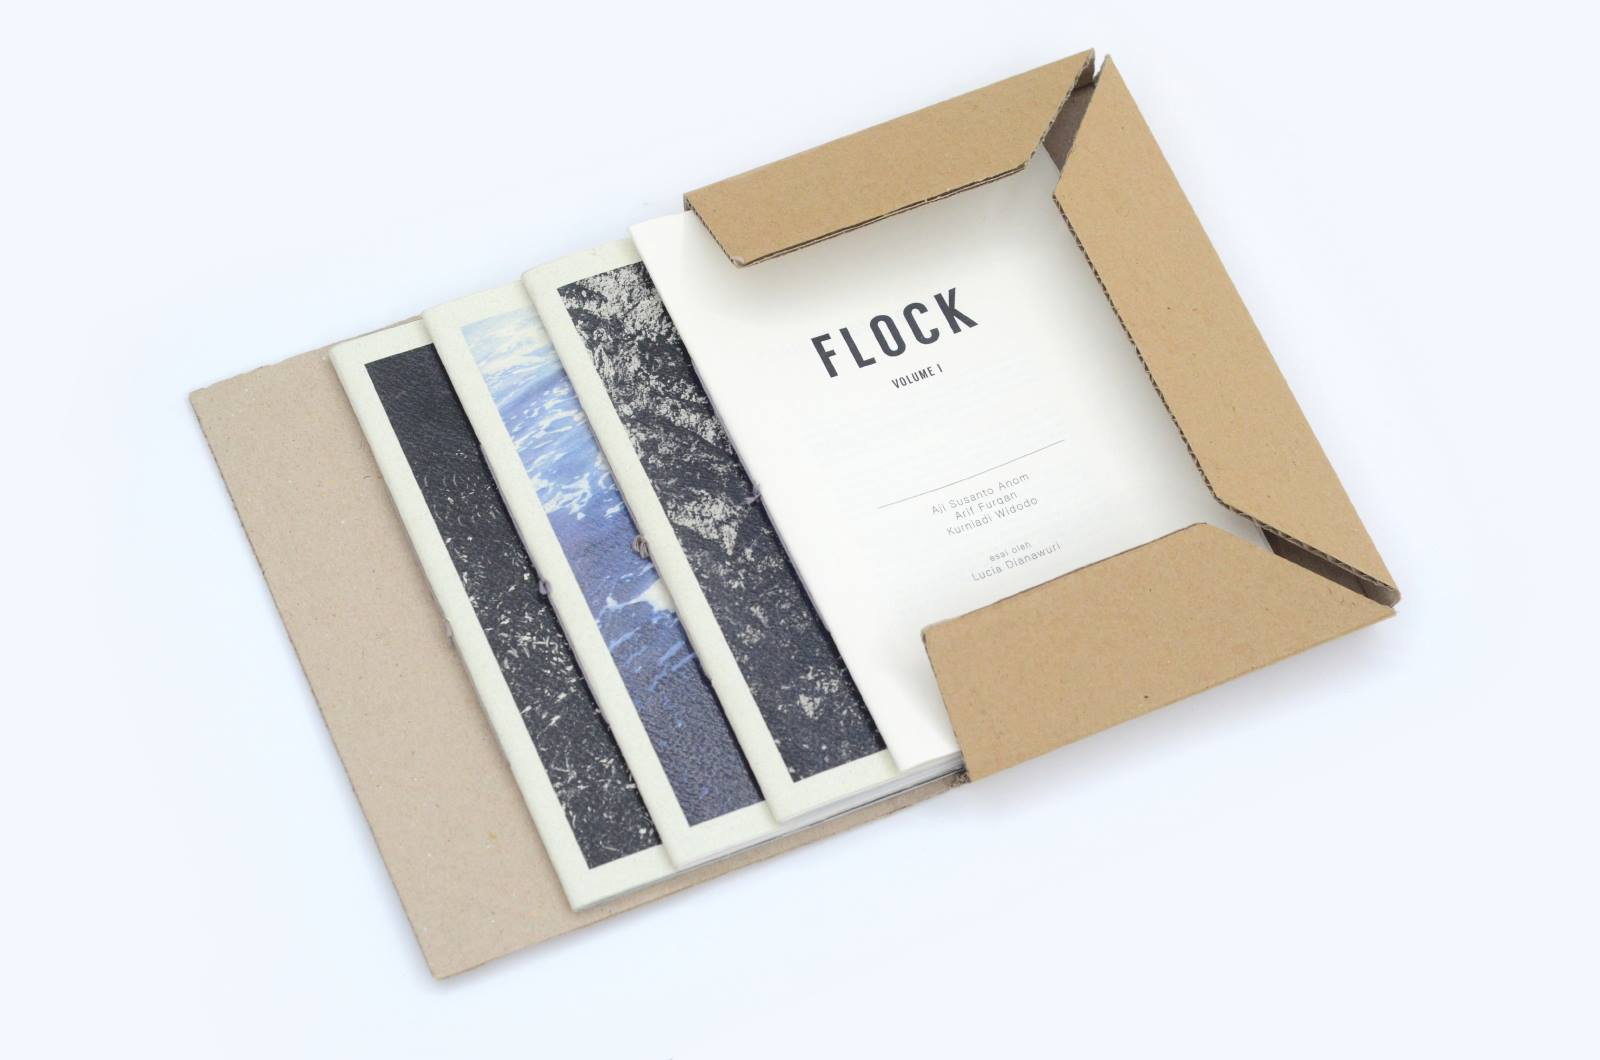 Flock Volume 01 - The Library Project